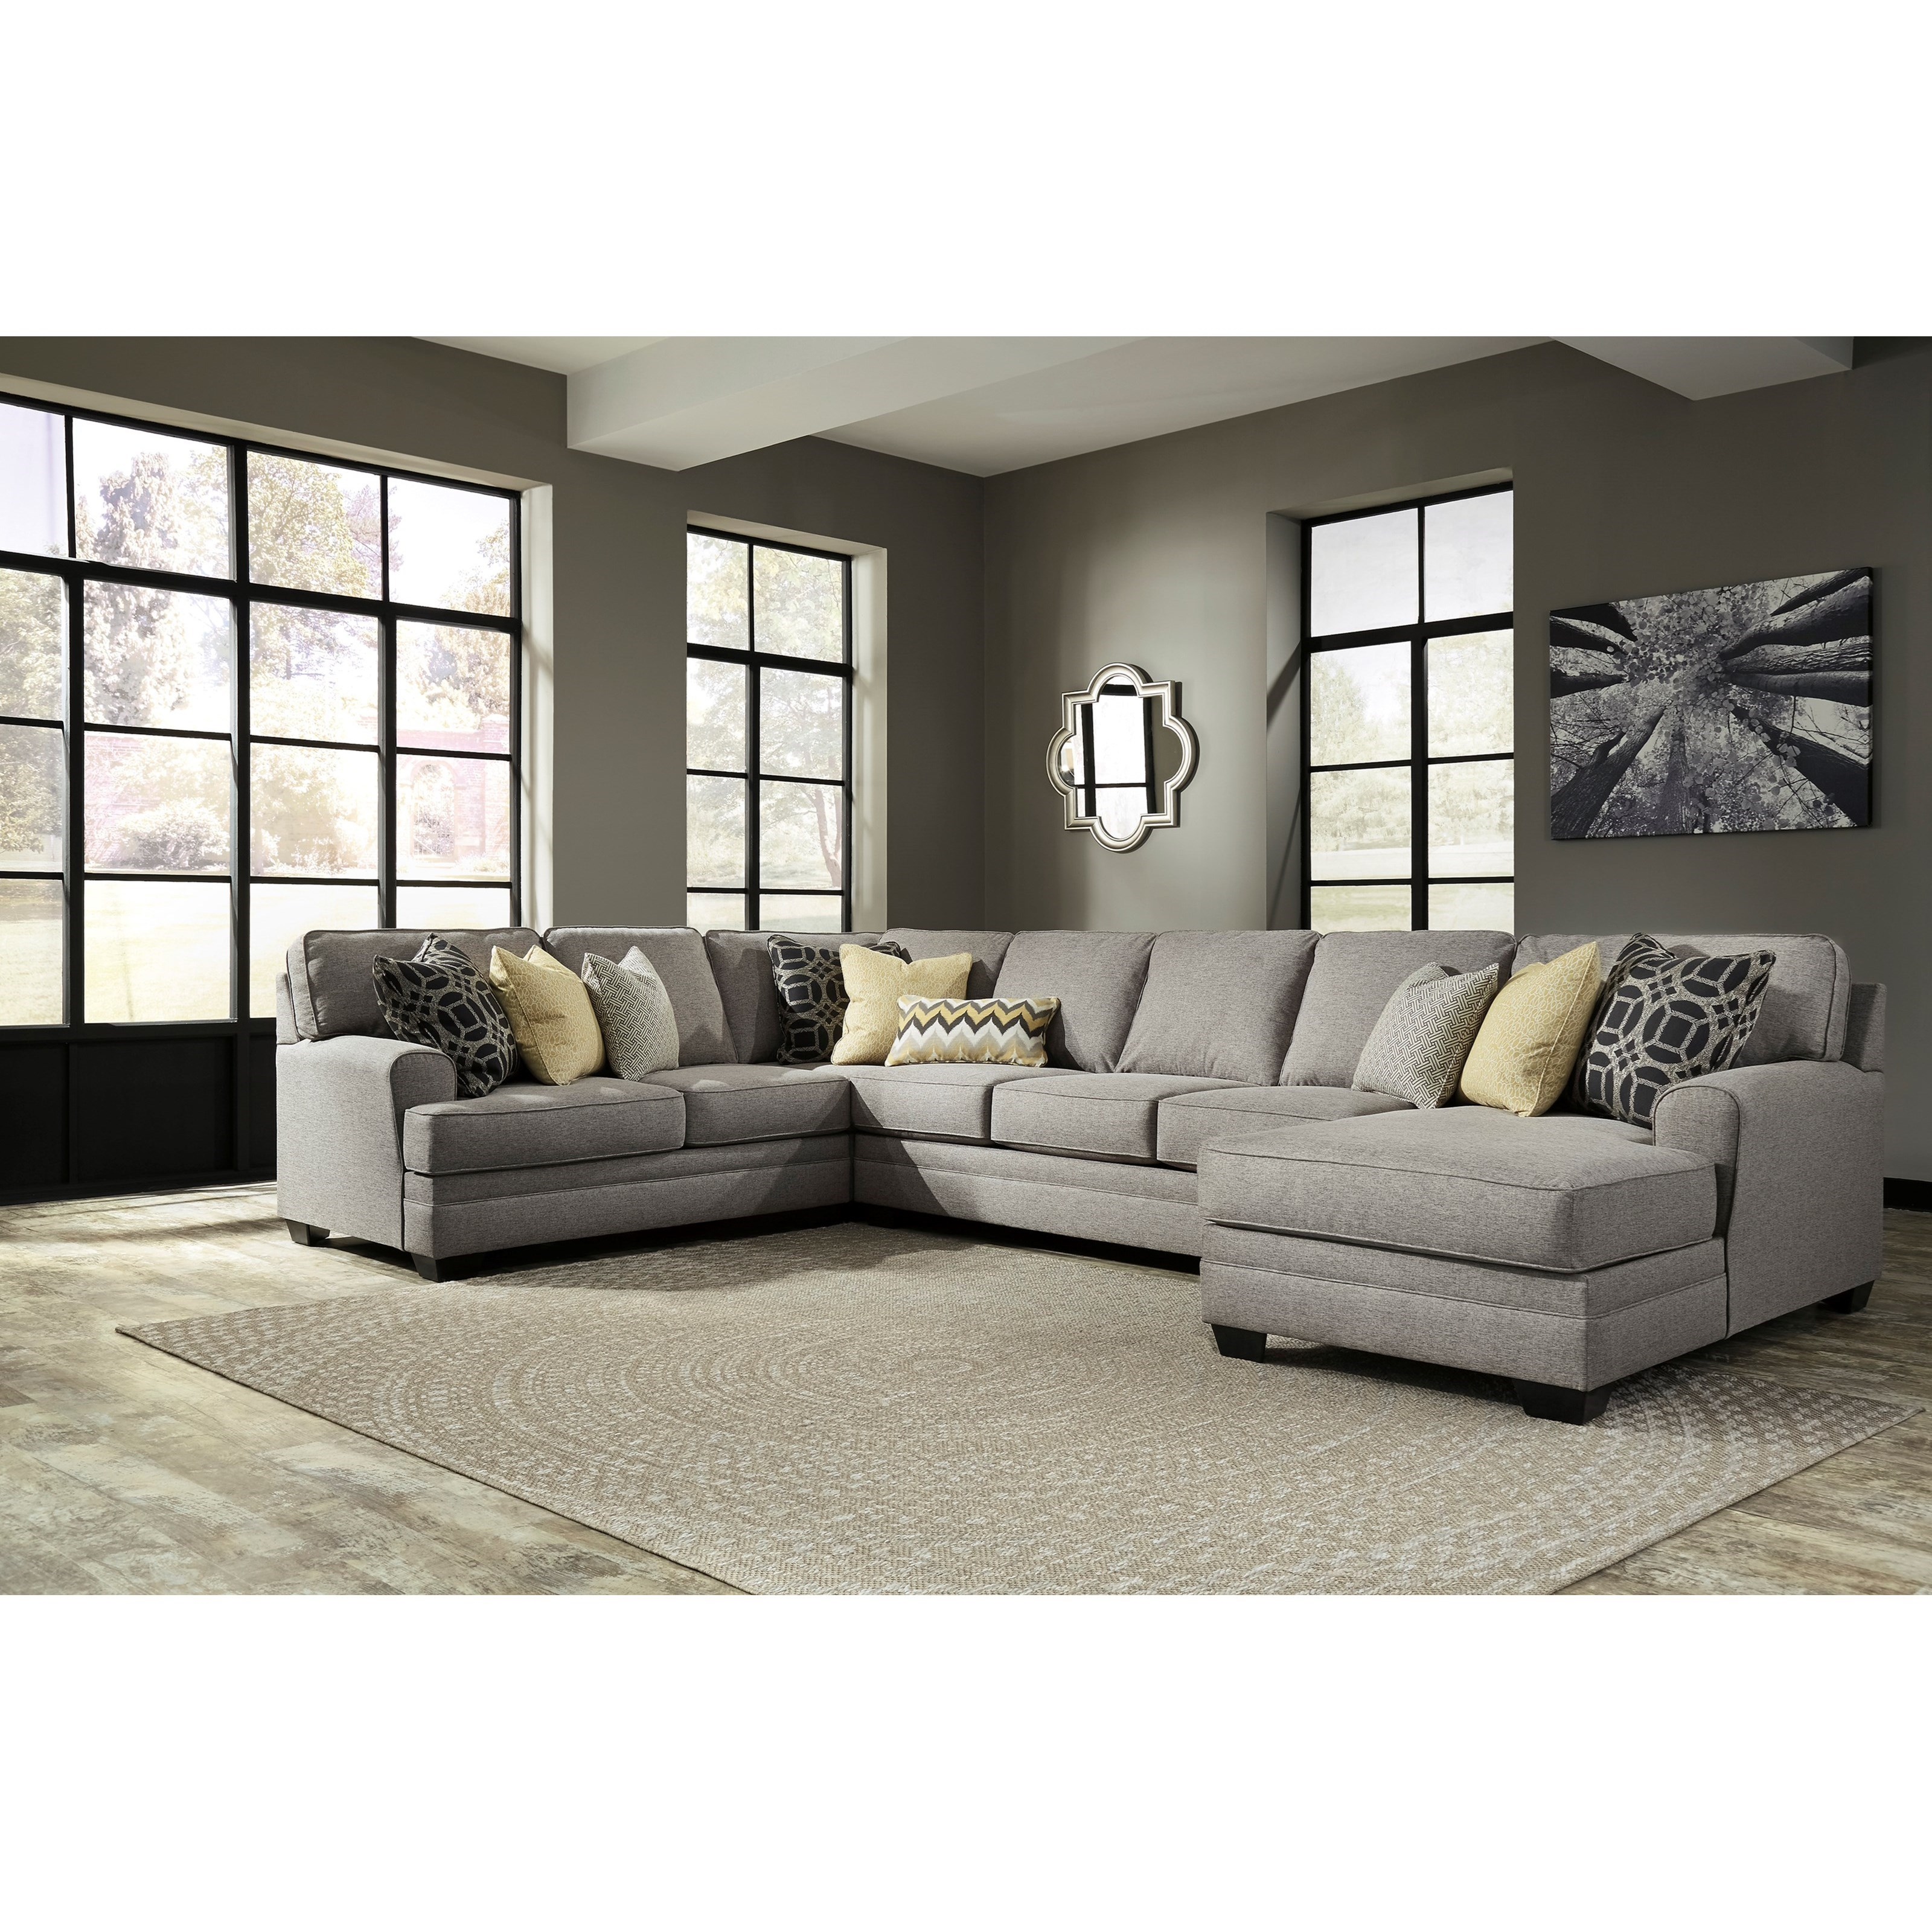 Benchcraft Cresson Contemporary 4 Piece Sectional with Chaise